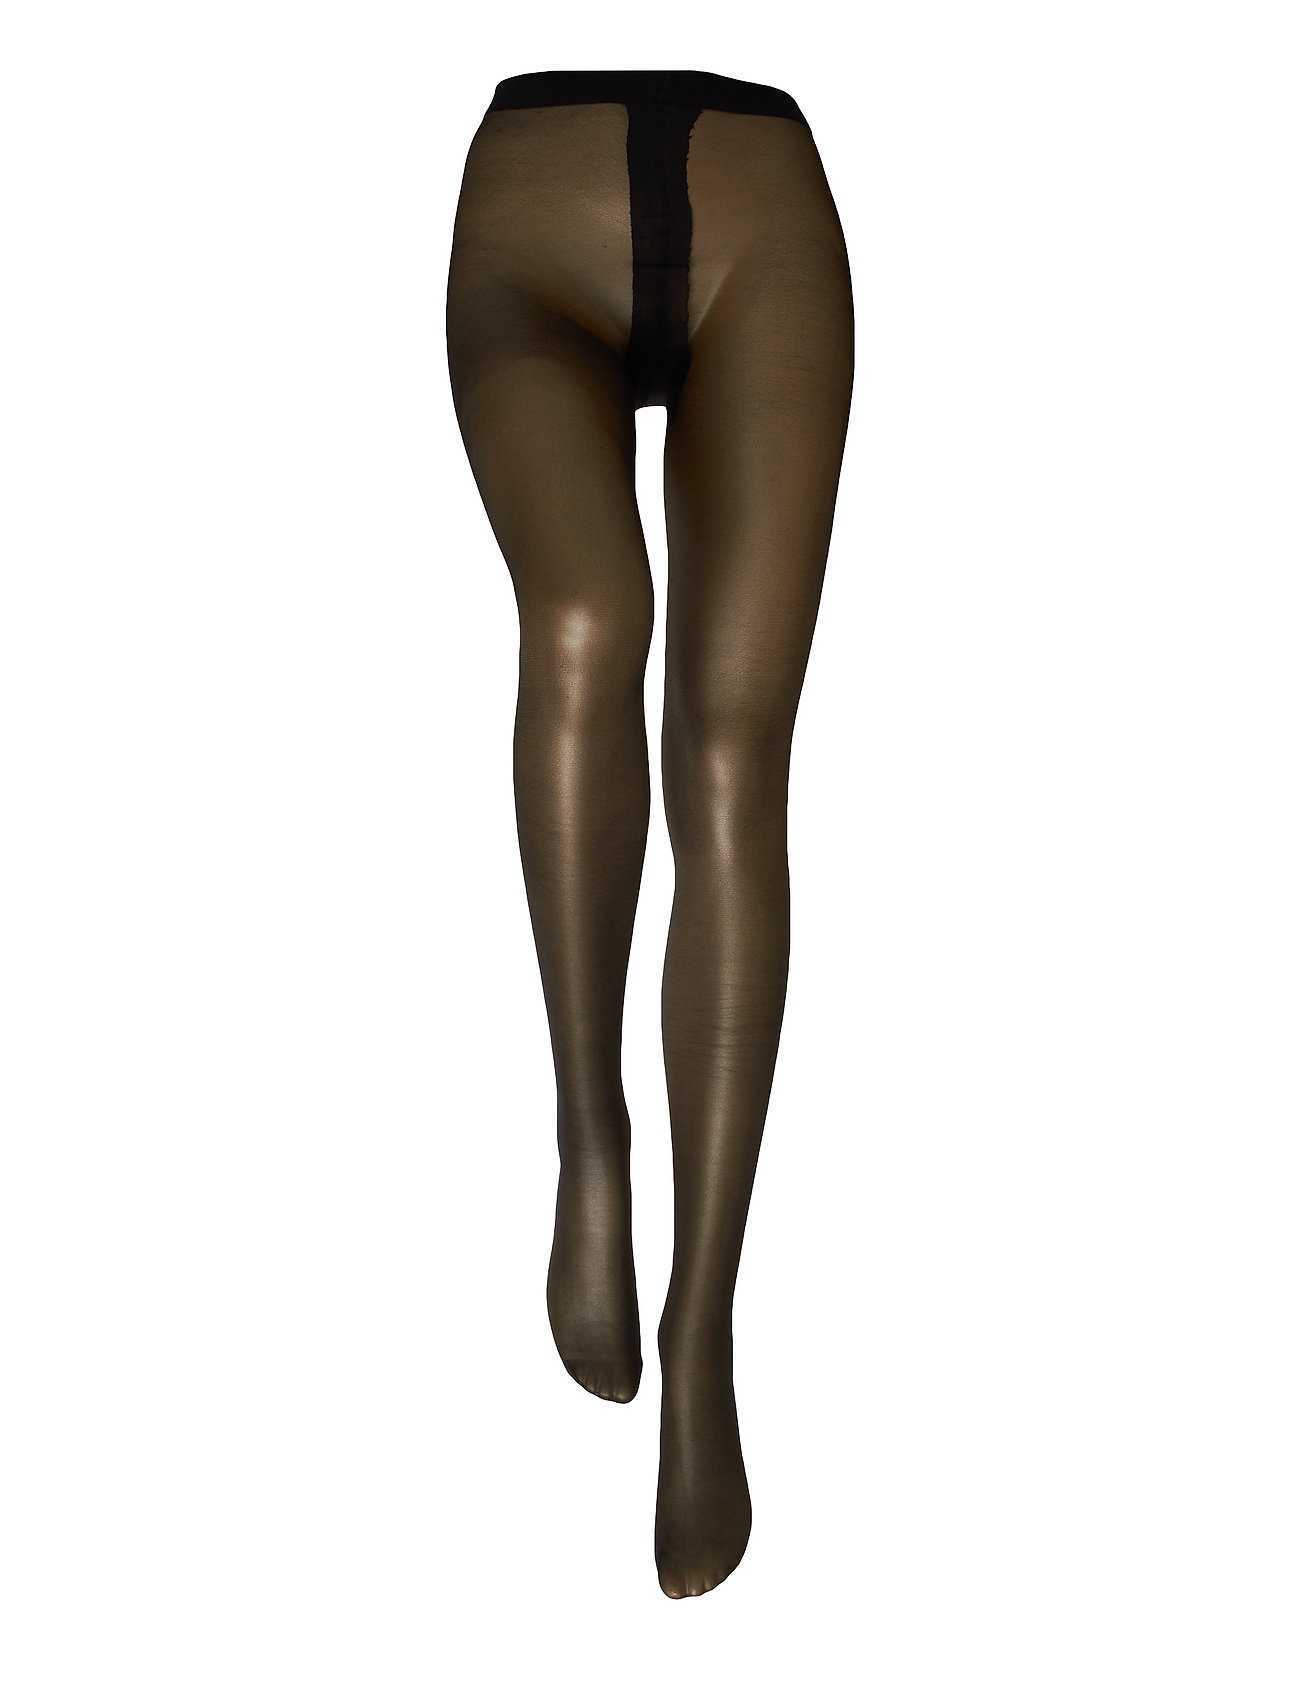 Decoy Ladies Silk look tights 20den - BLACK